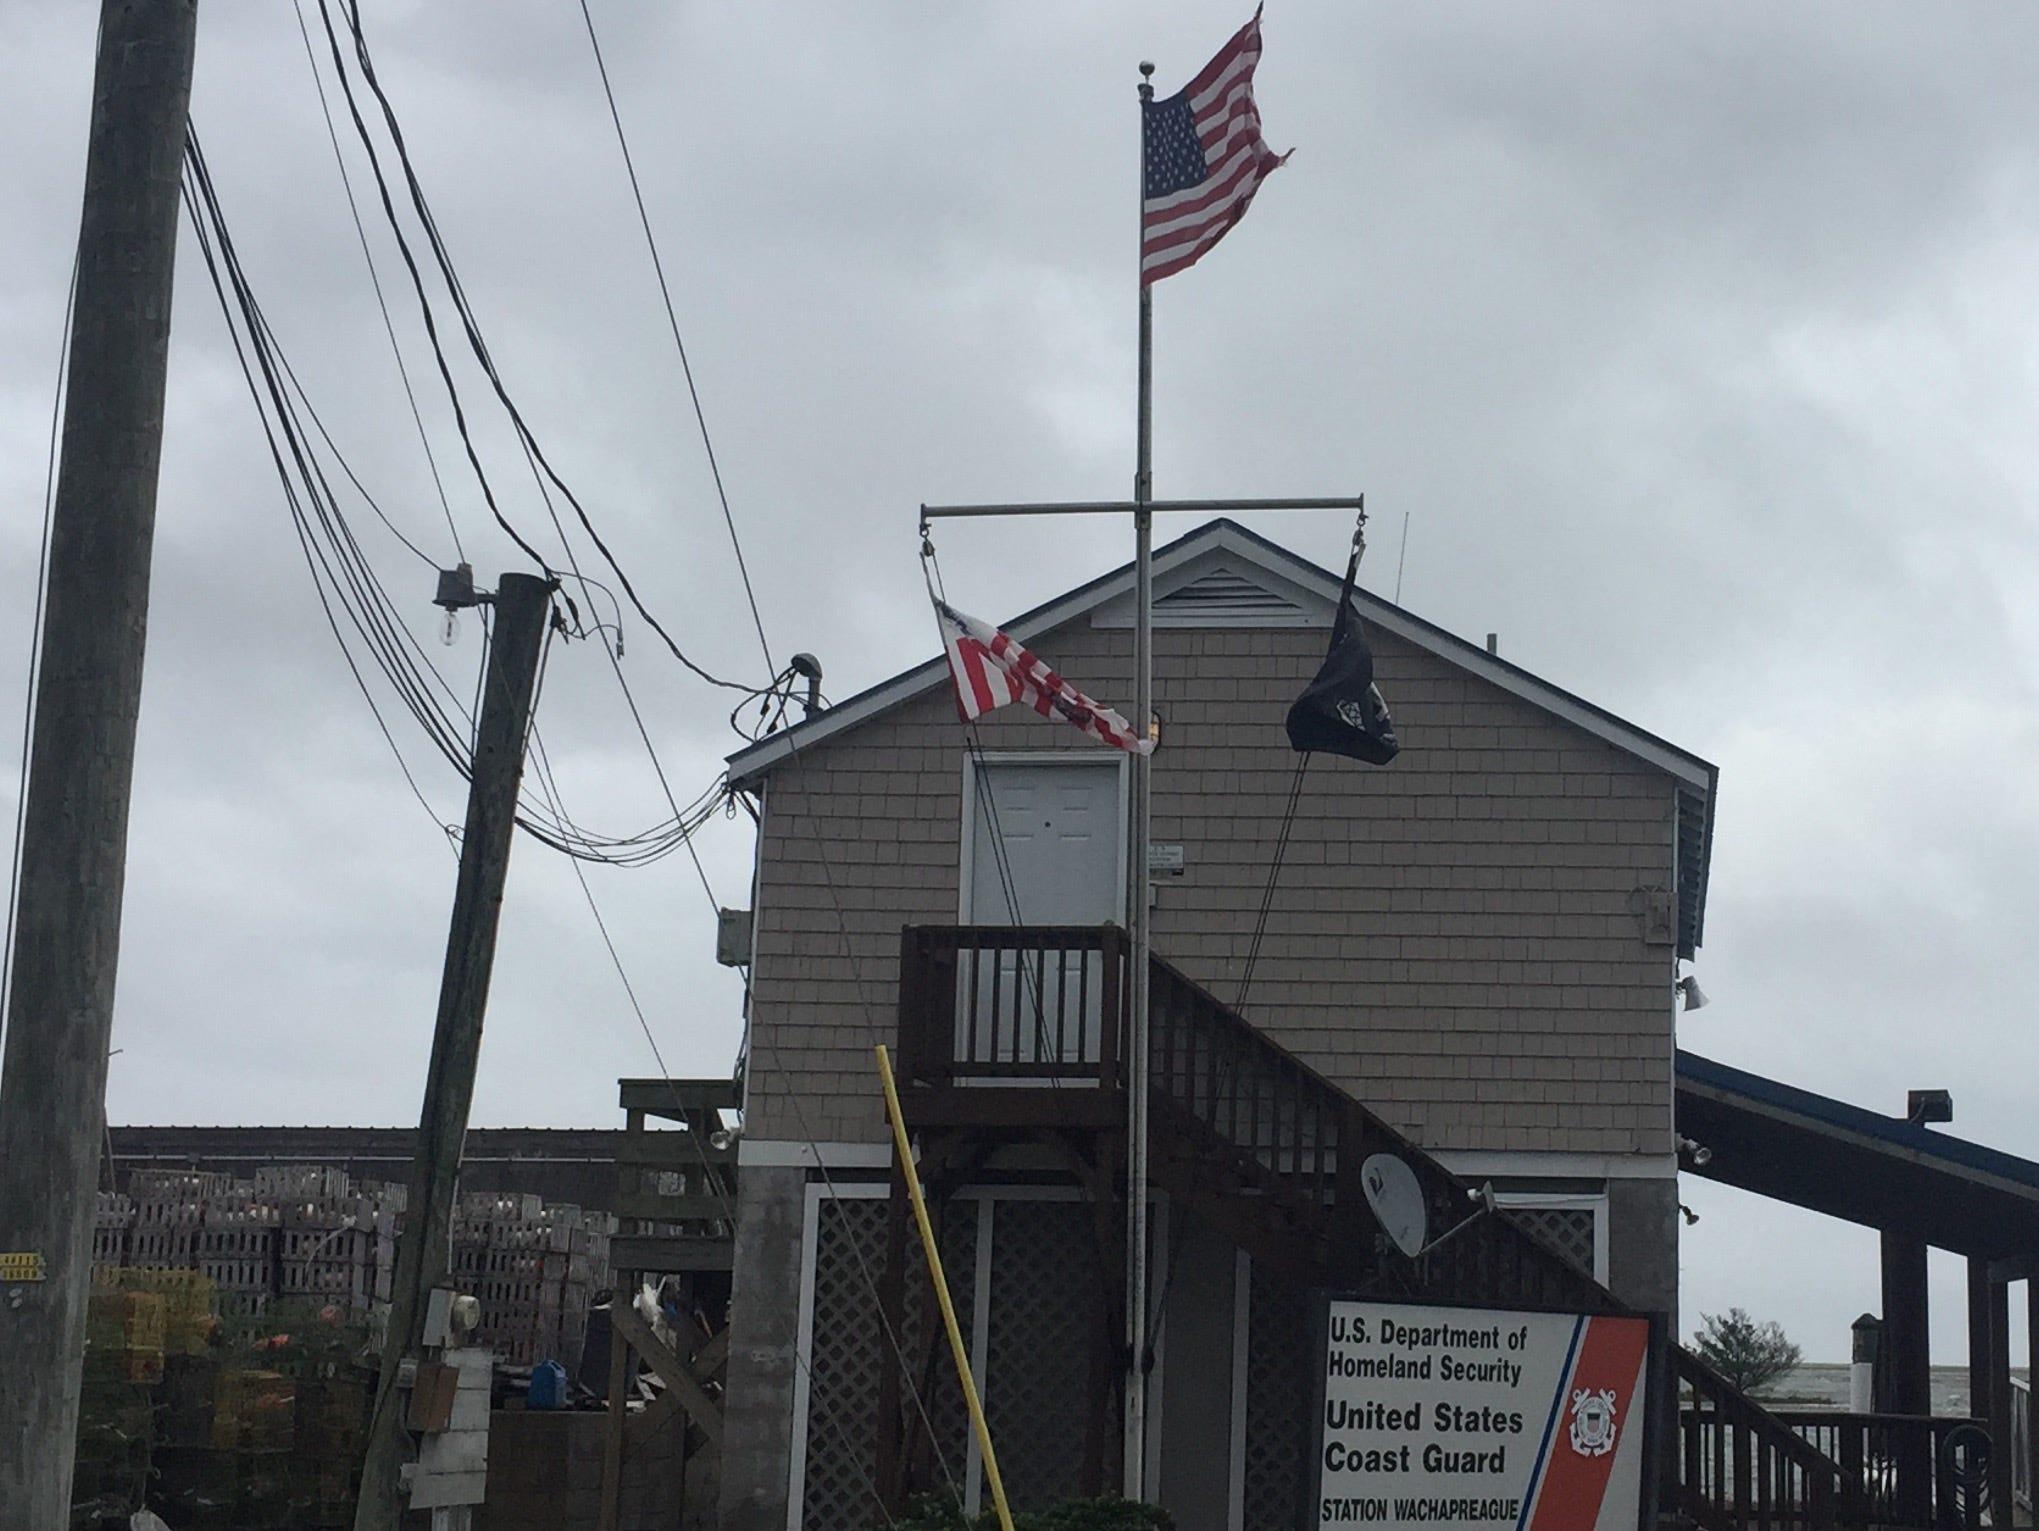 Wachapreague, Virginia experiences windy conditions and minor coastal flooding during high tide Friday, Sept. 14, 2018 as result of Hurricane Florence.